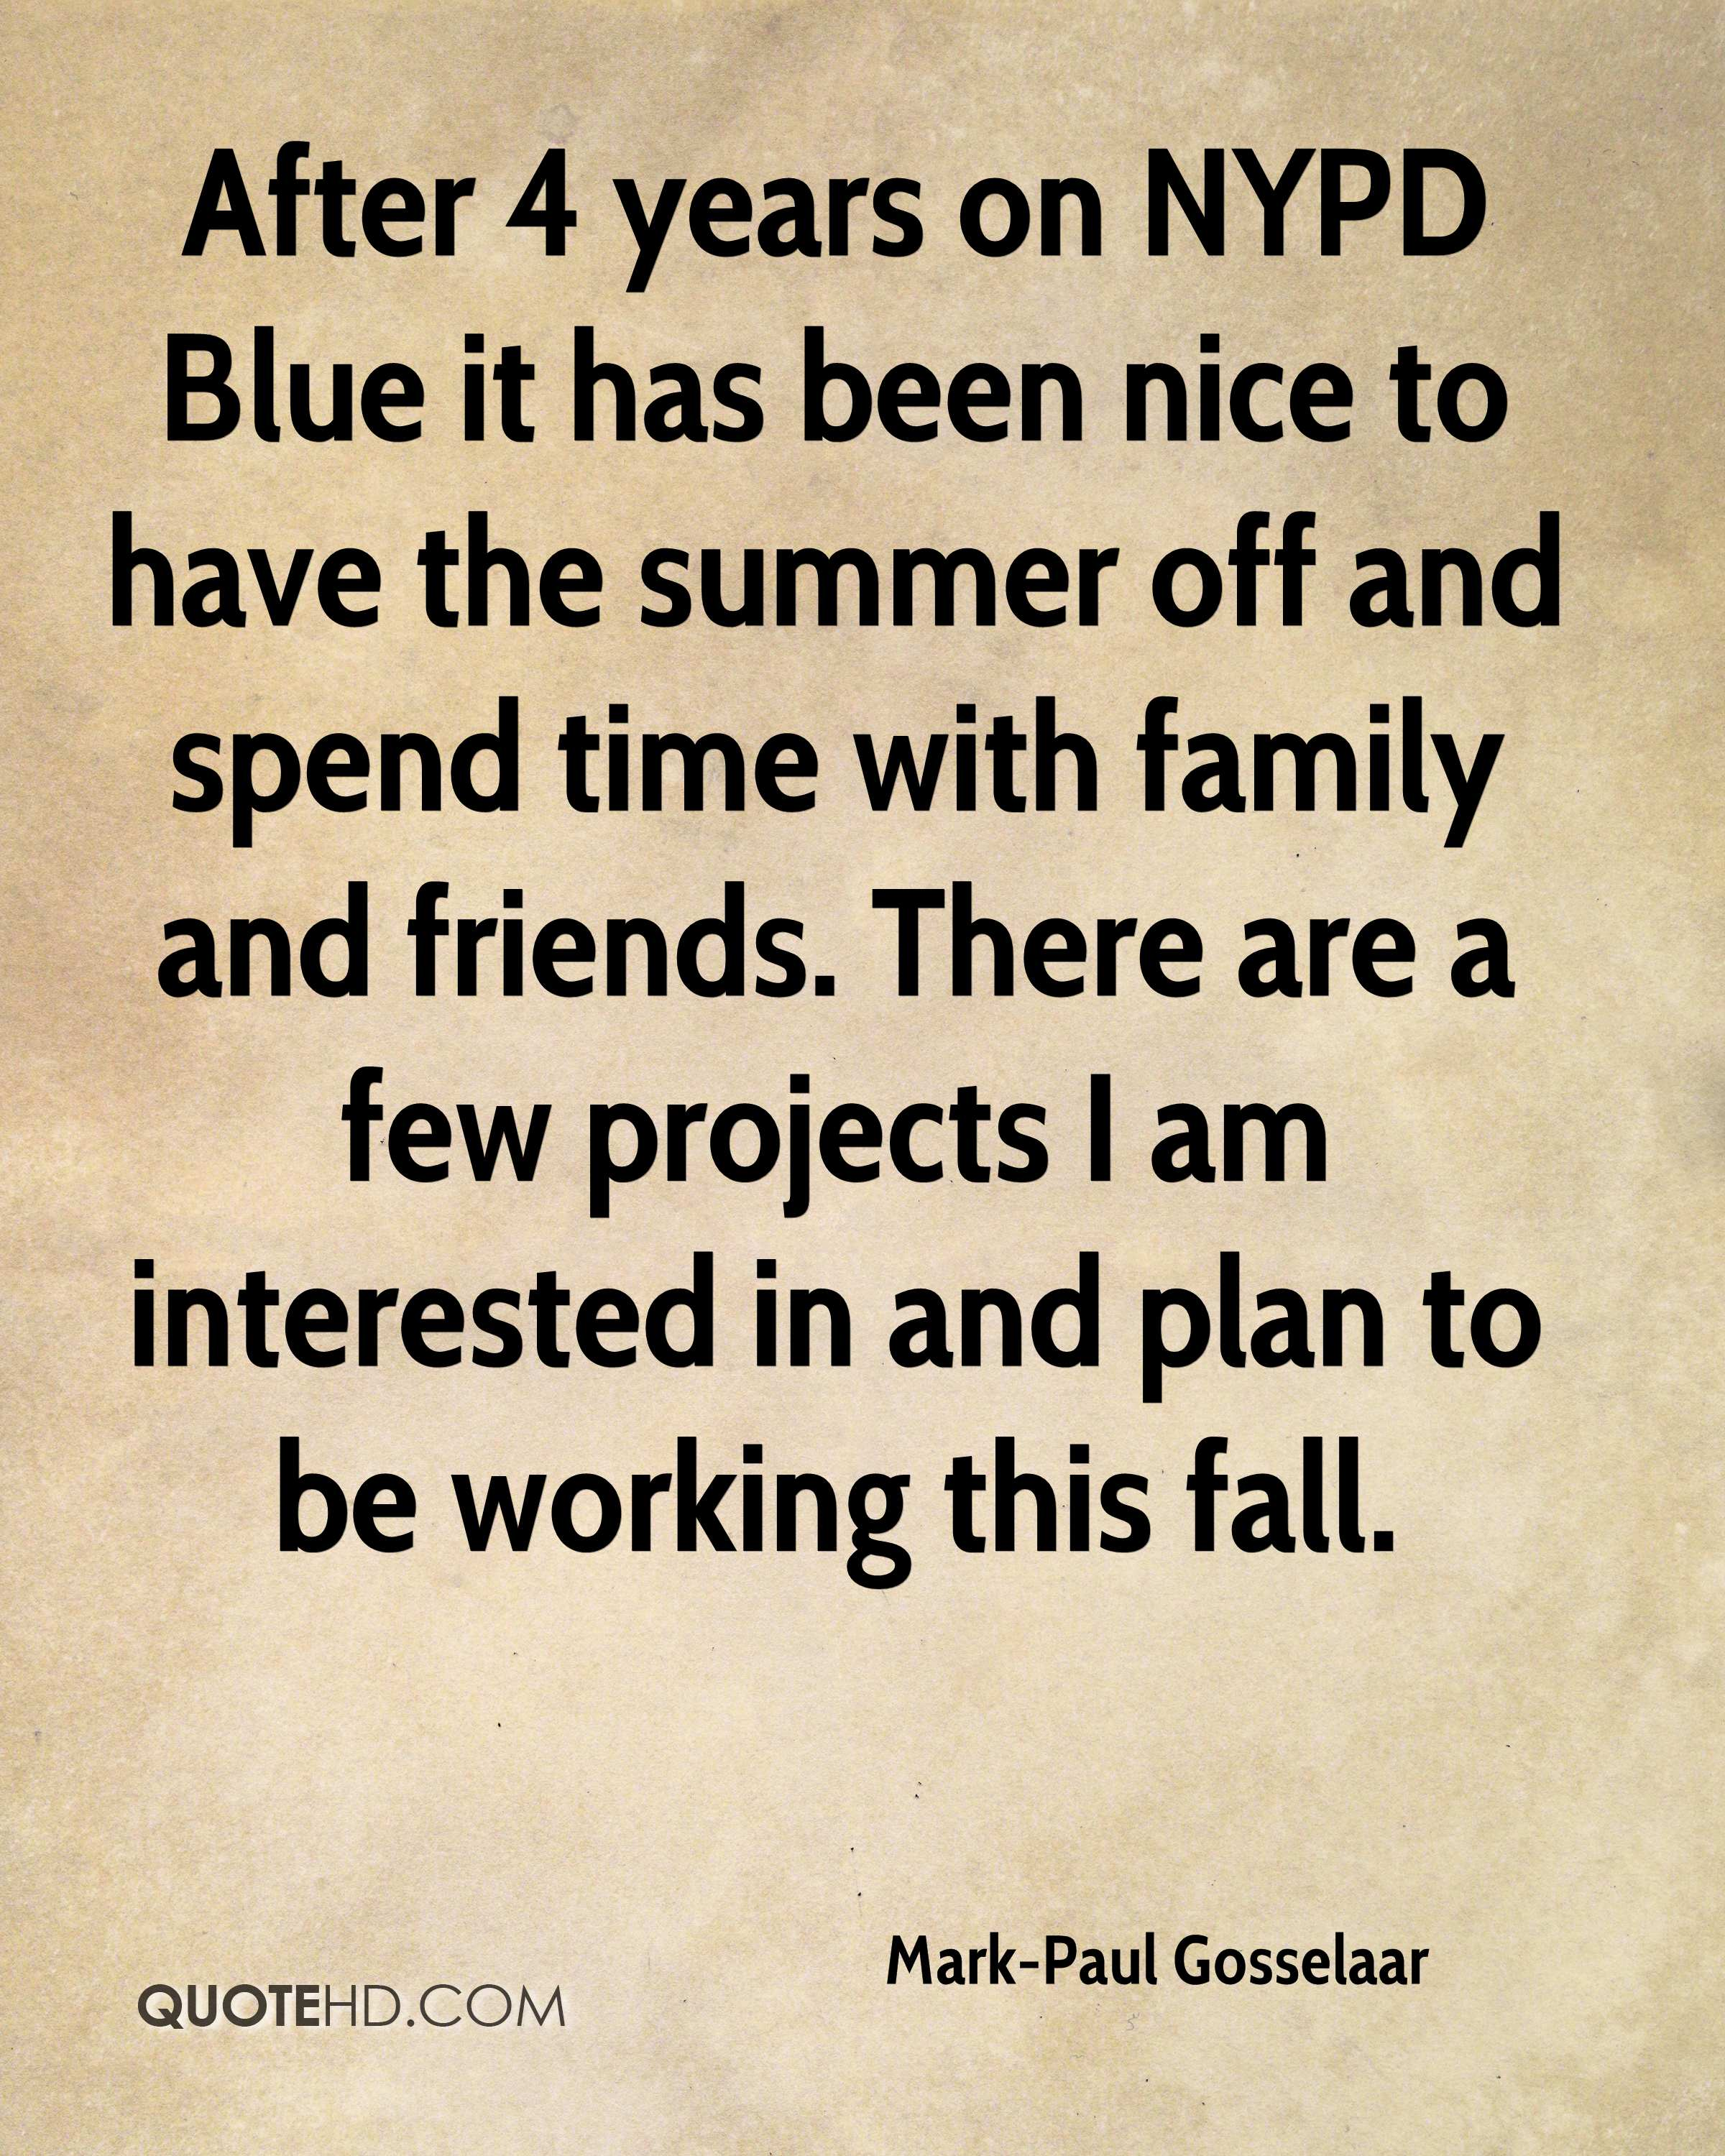 After 4 years on NYPD Blue it has been nice to have the summer off and spend time with family and friends. There are a few projects I am interested in and plan to be working this fall.